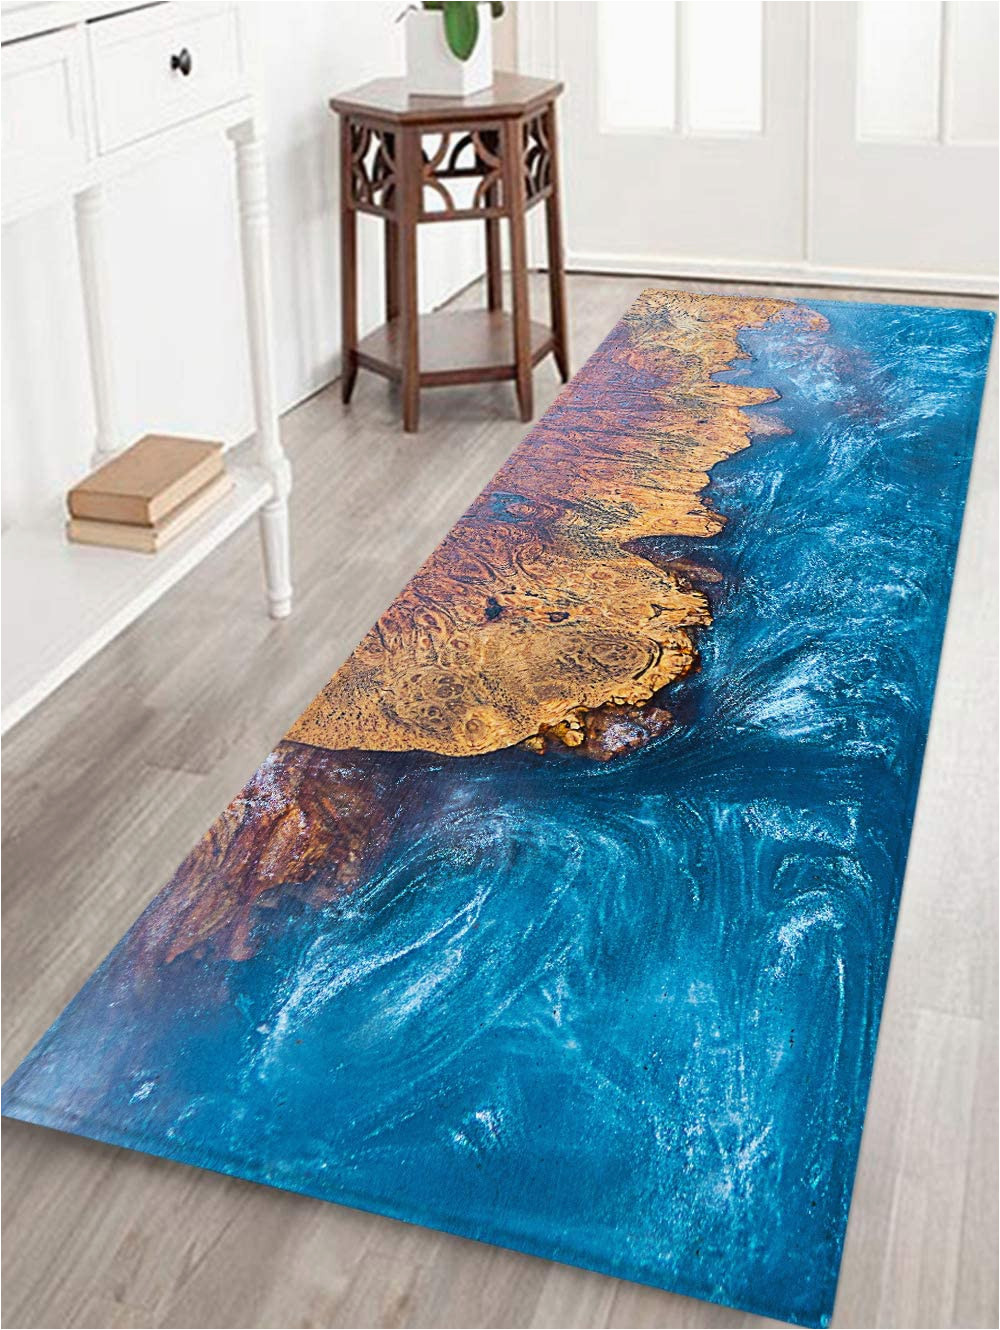 Bath Rugs that Absorb Water Bathroom Rug Non Slip Flannel Microfiber Bath Mat area Rug with Water Resistant Rubber Back Anti Slip for Kitchen and Bathroom